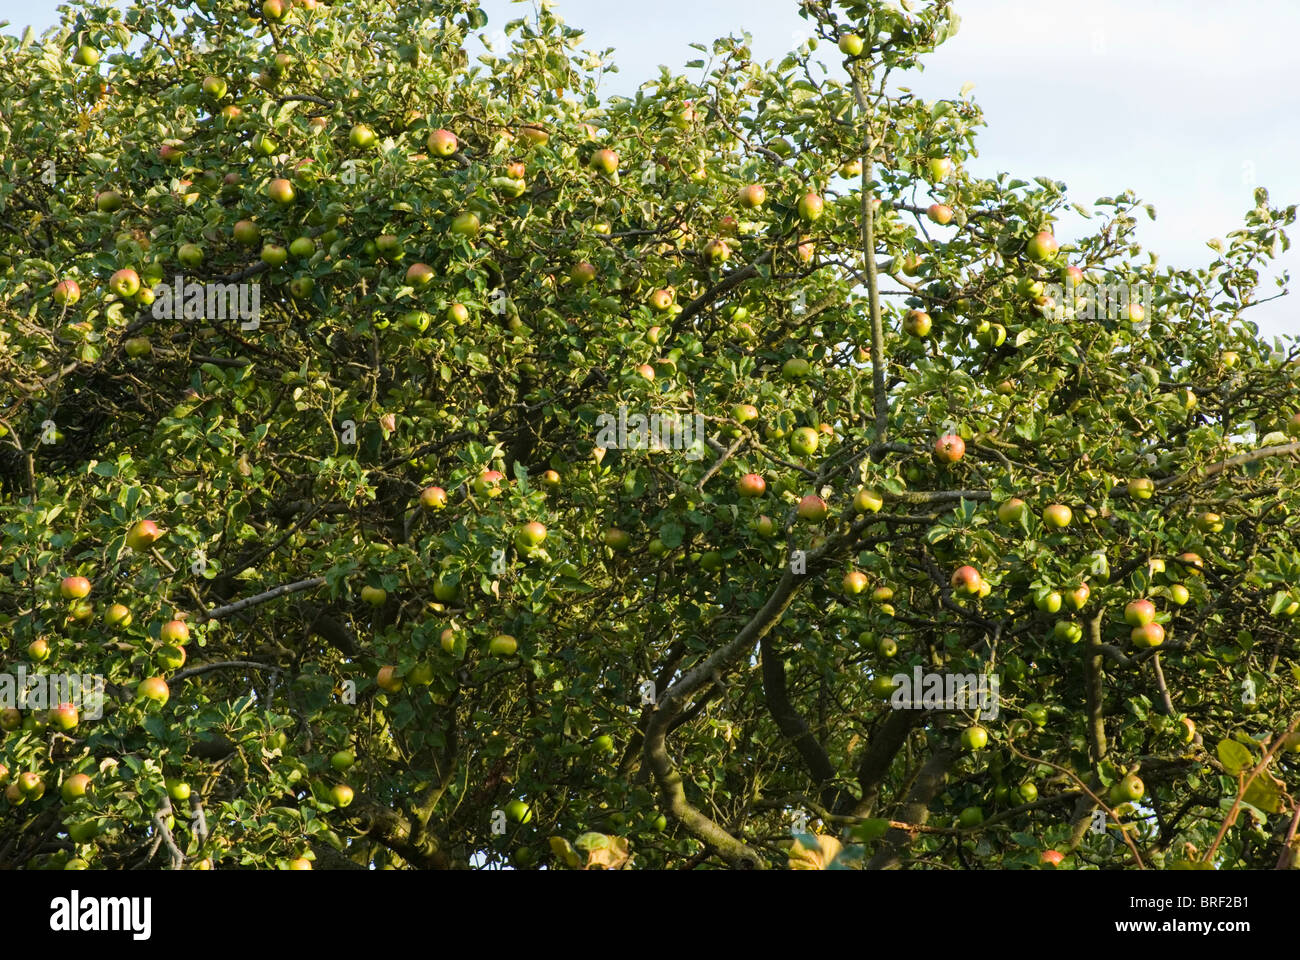 An old Bramley apple tree laden with fruit - Stock Image